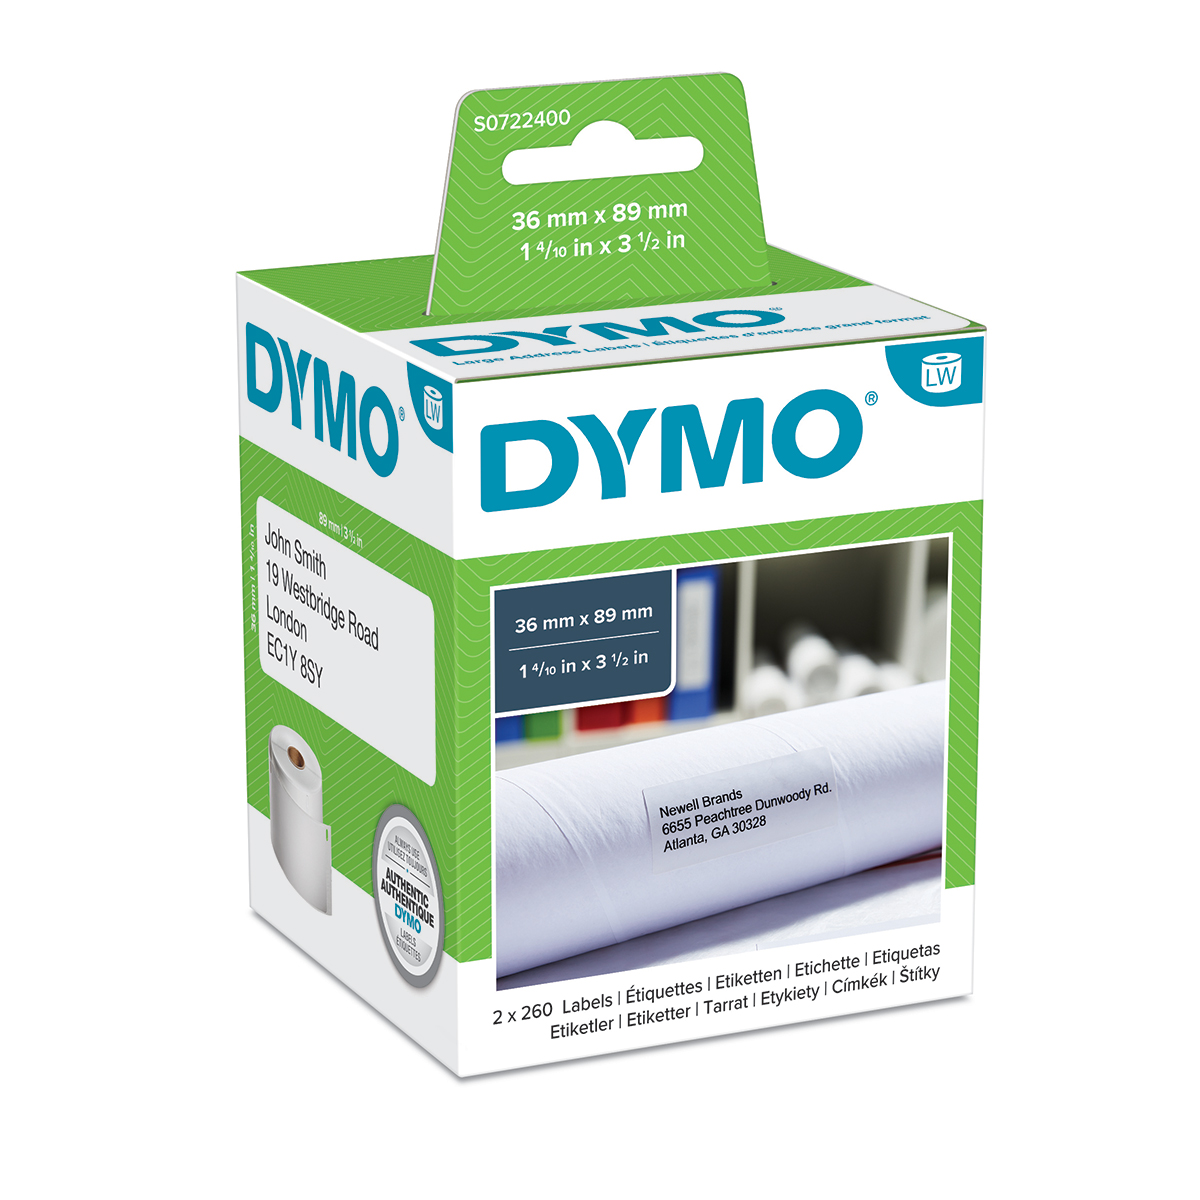 Dymo 99012 36mm x 89mm Large Address Labels Black on White Box of 2 Rolls